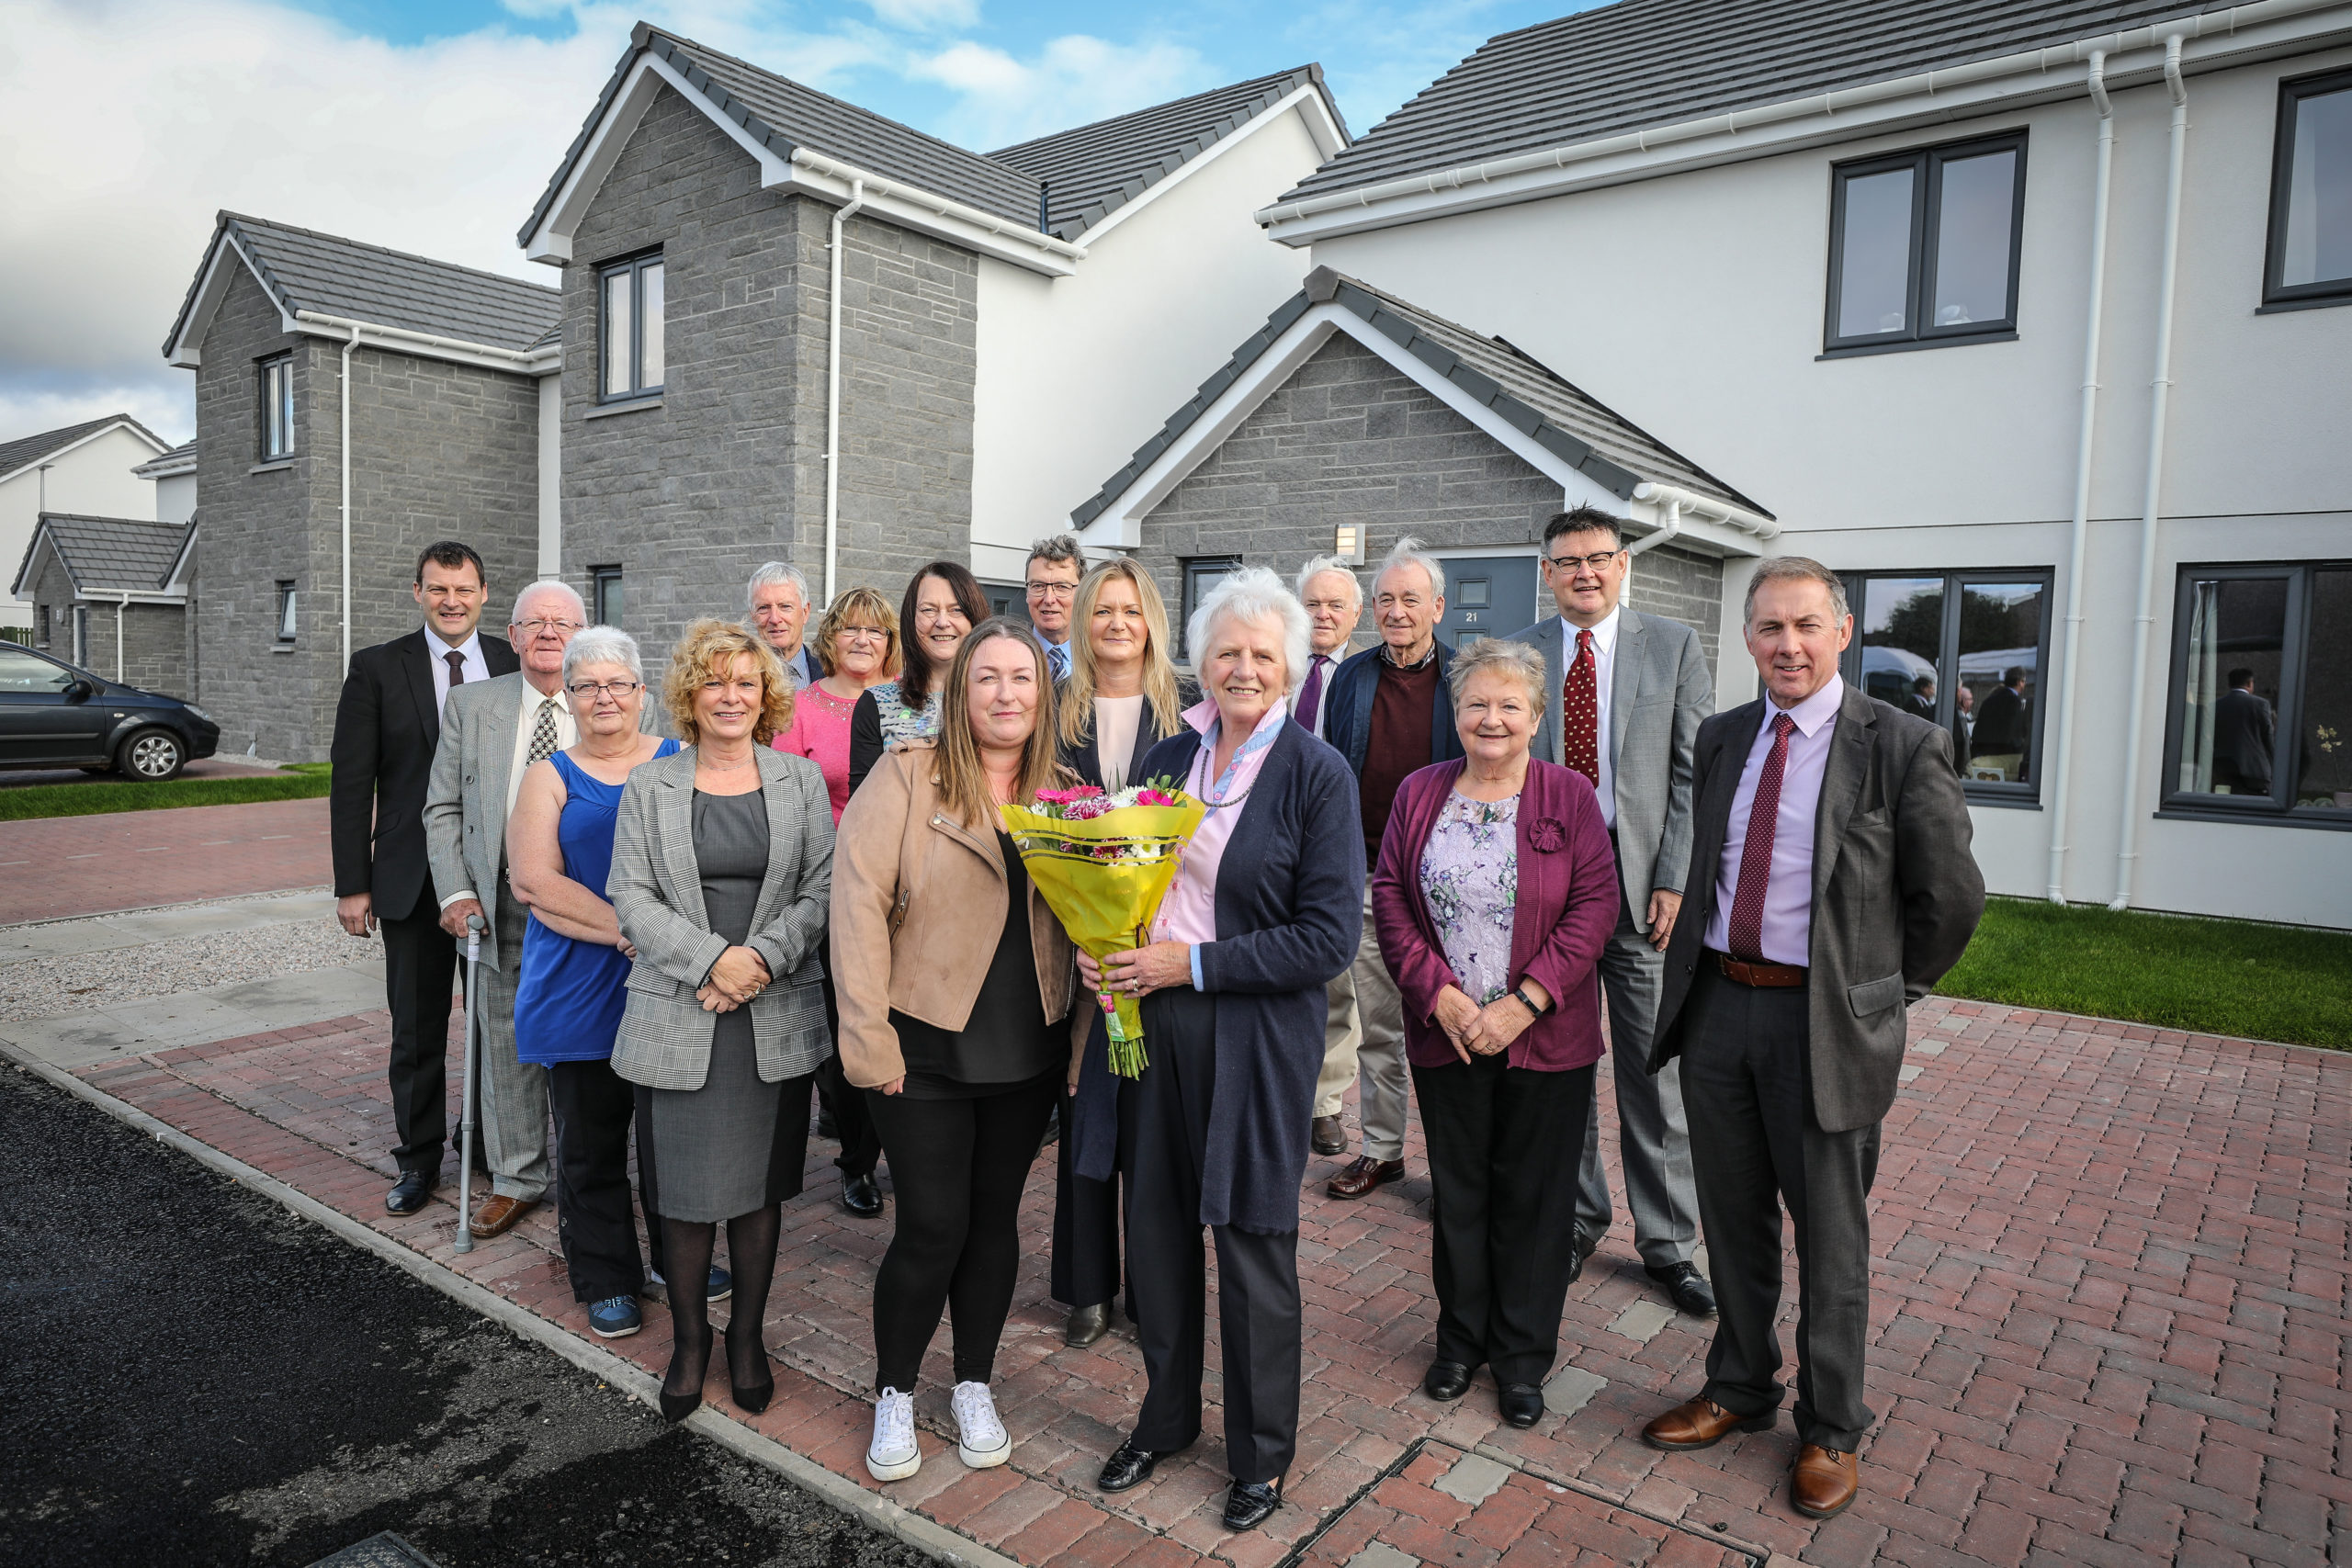 Angus Housing Association recently opened the Malt Loan affordable homes development in Carnoustie.